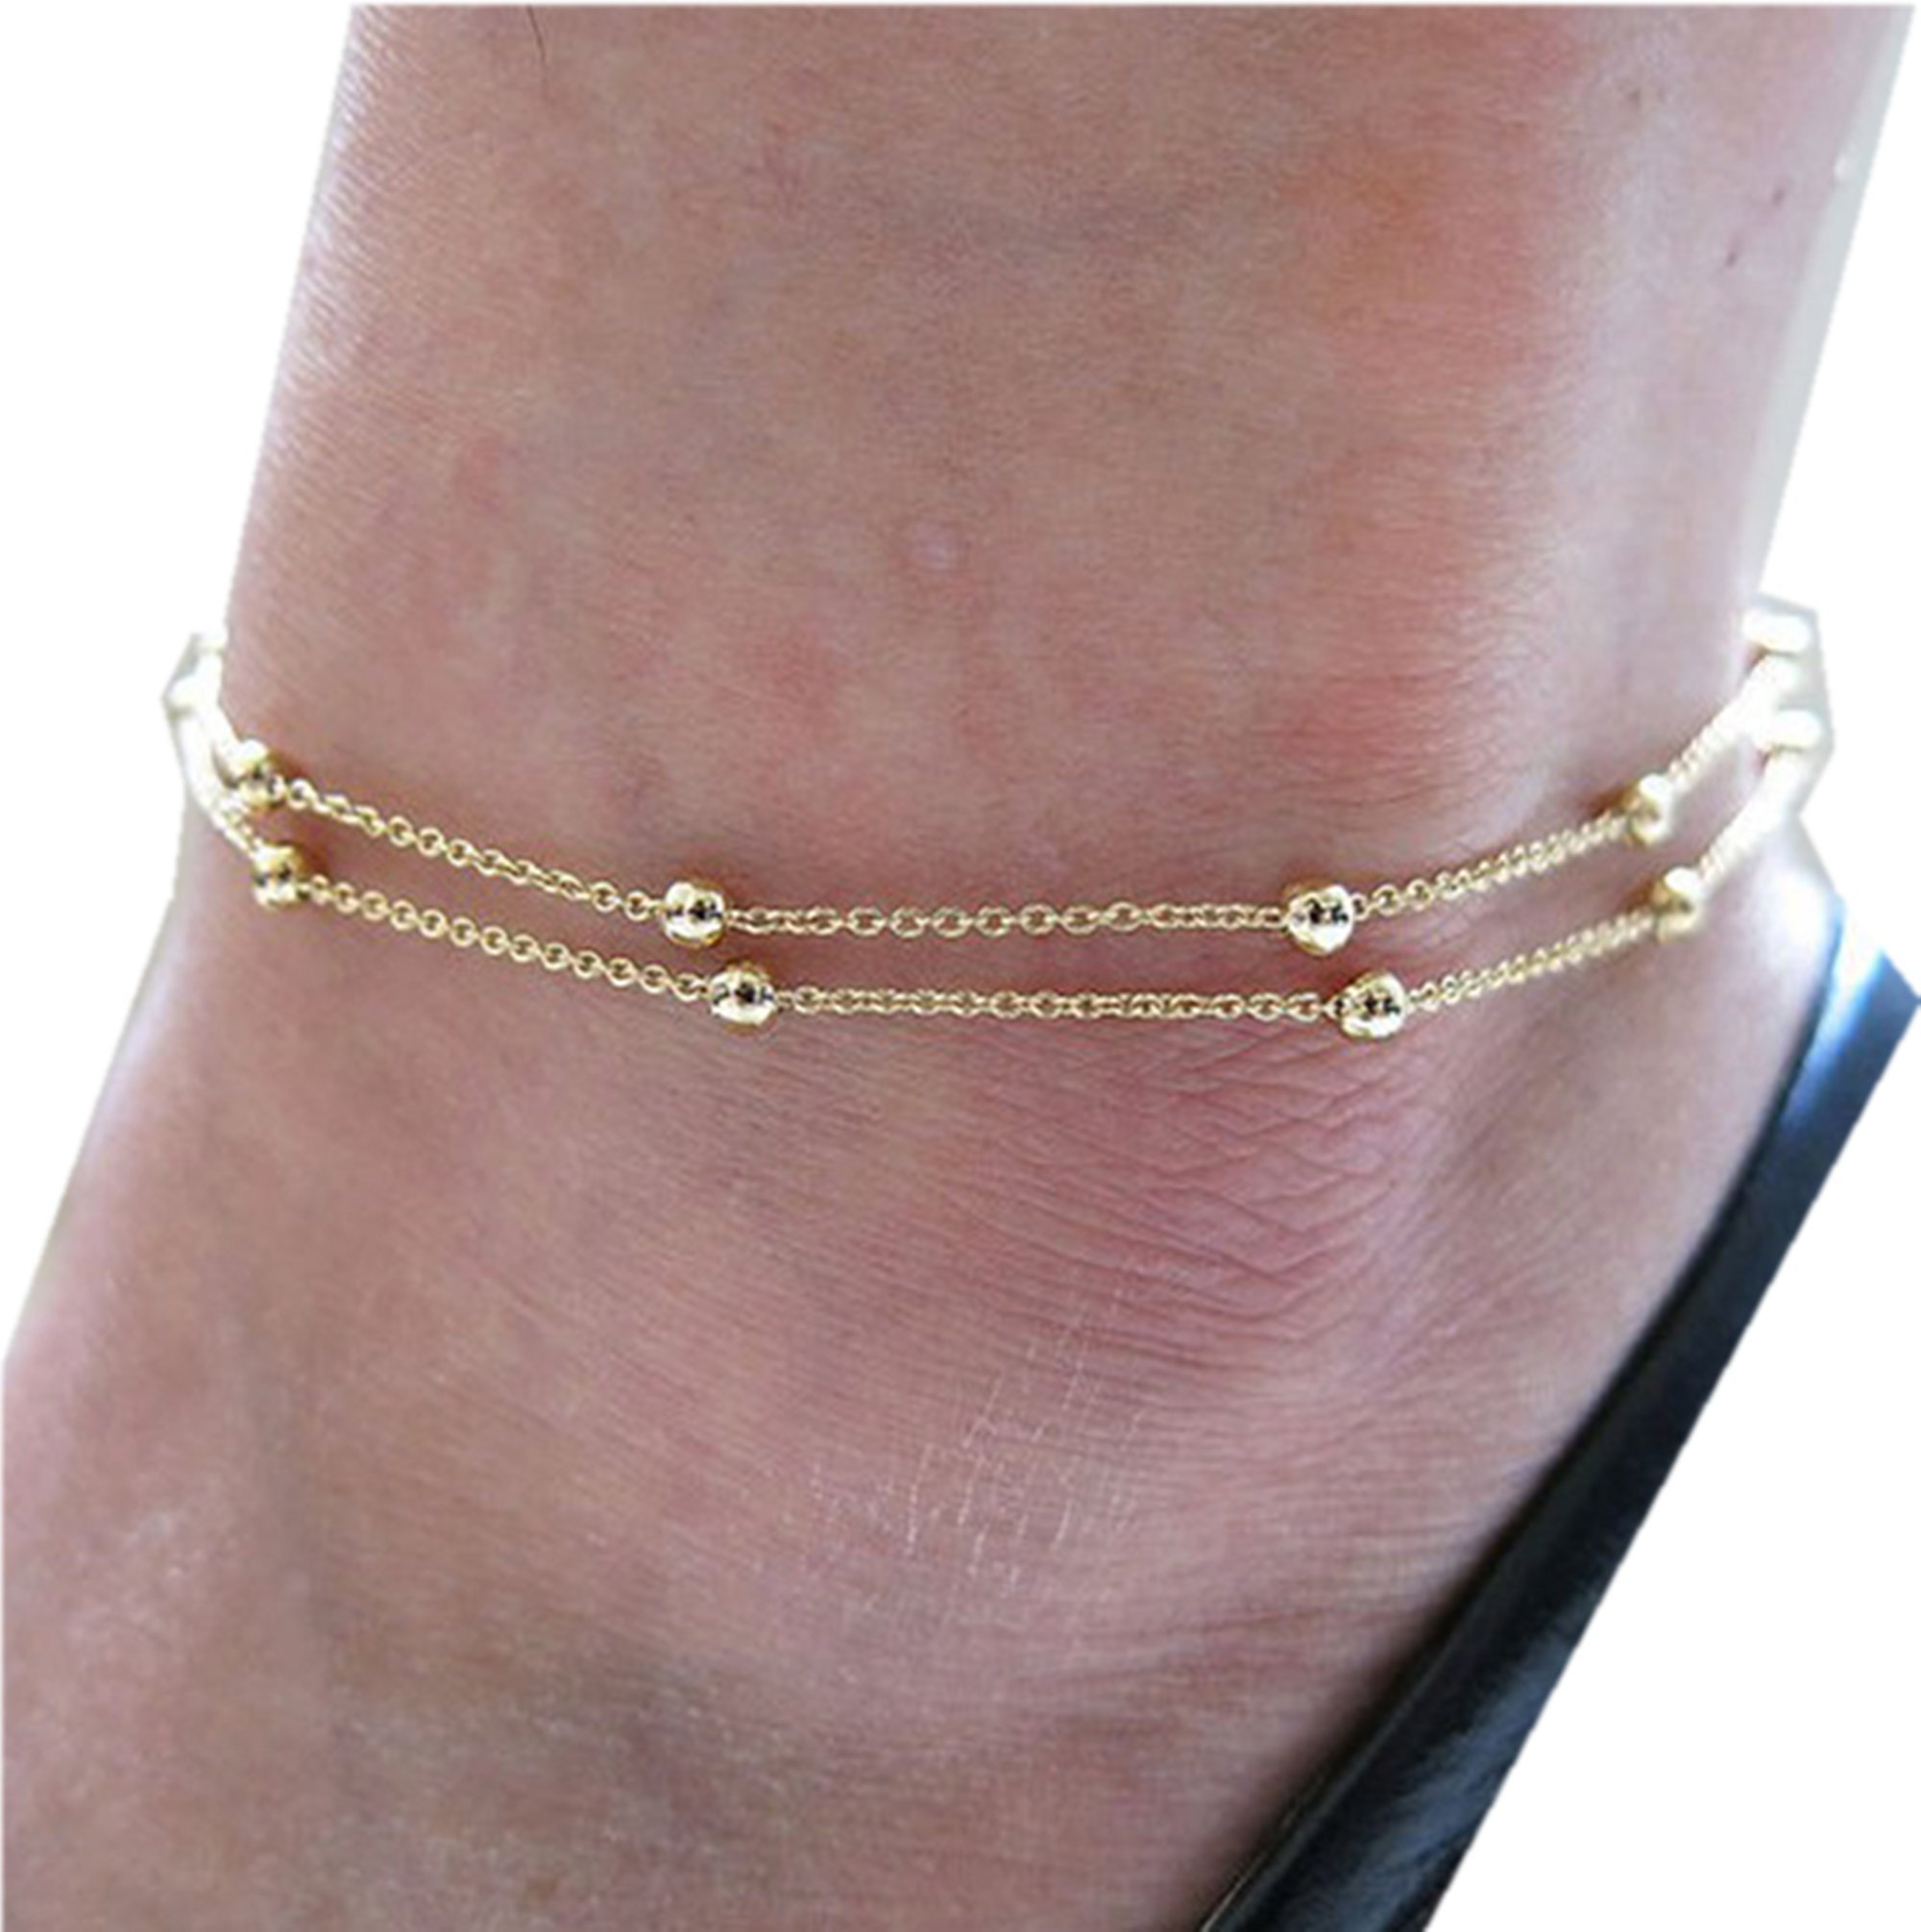 accent popular open island jewelers jewelry diamond bracelet long bracelets fortunoff hearts ankle anklet